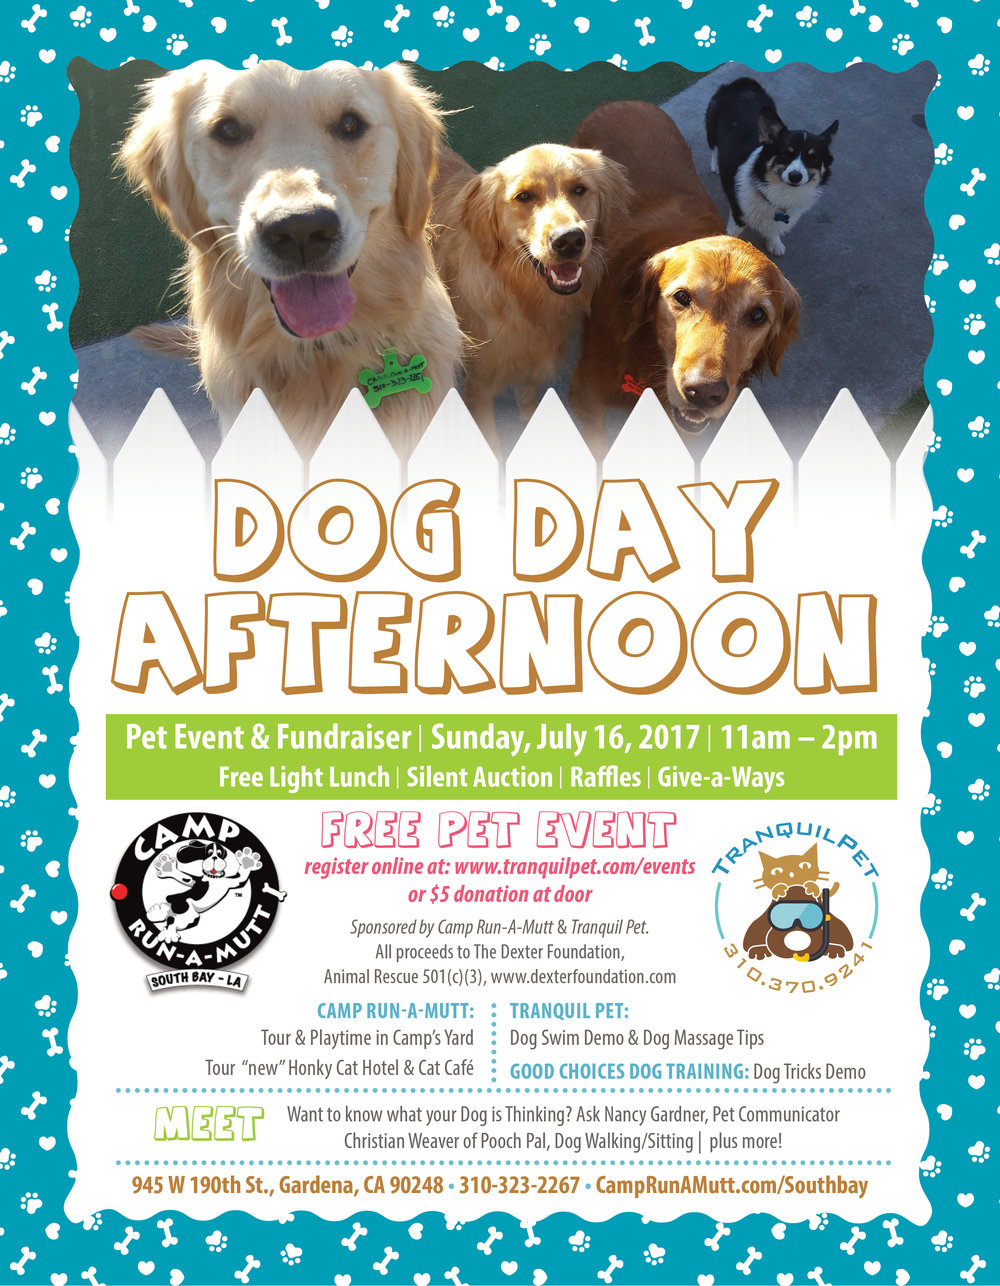 Pet Event & Fundraiser